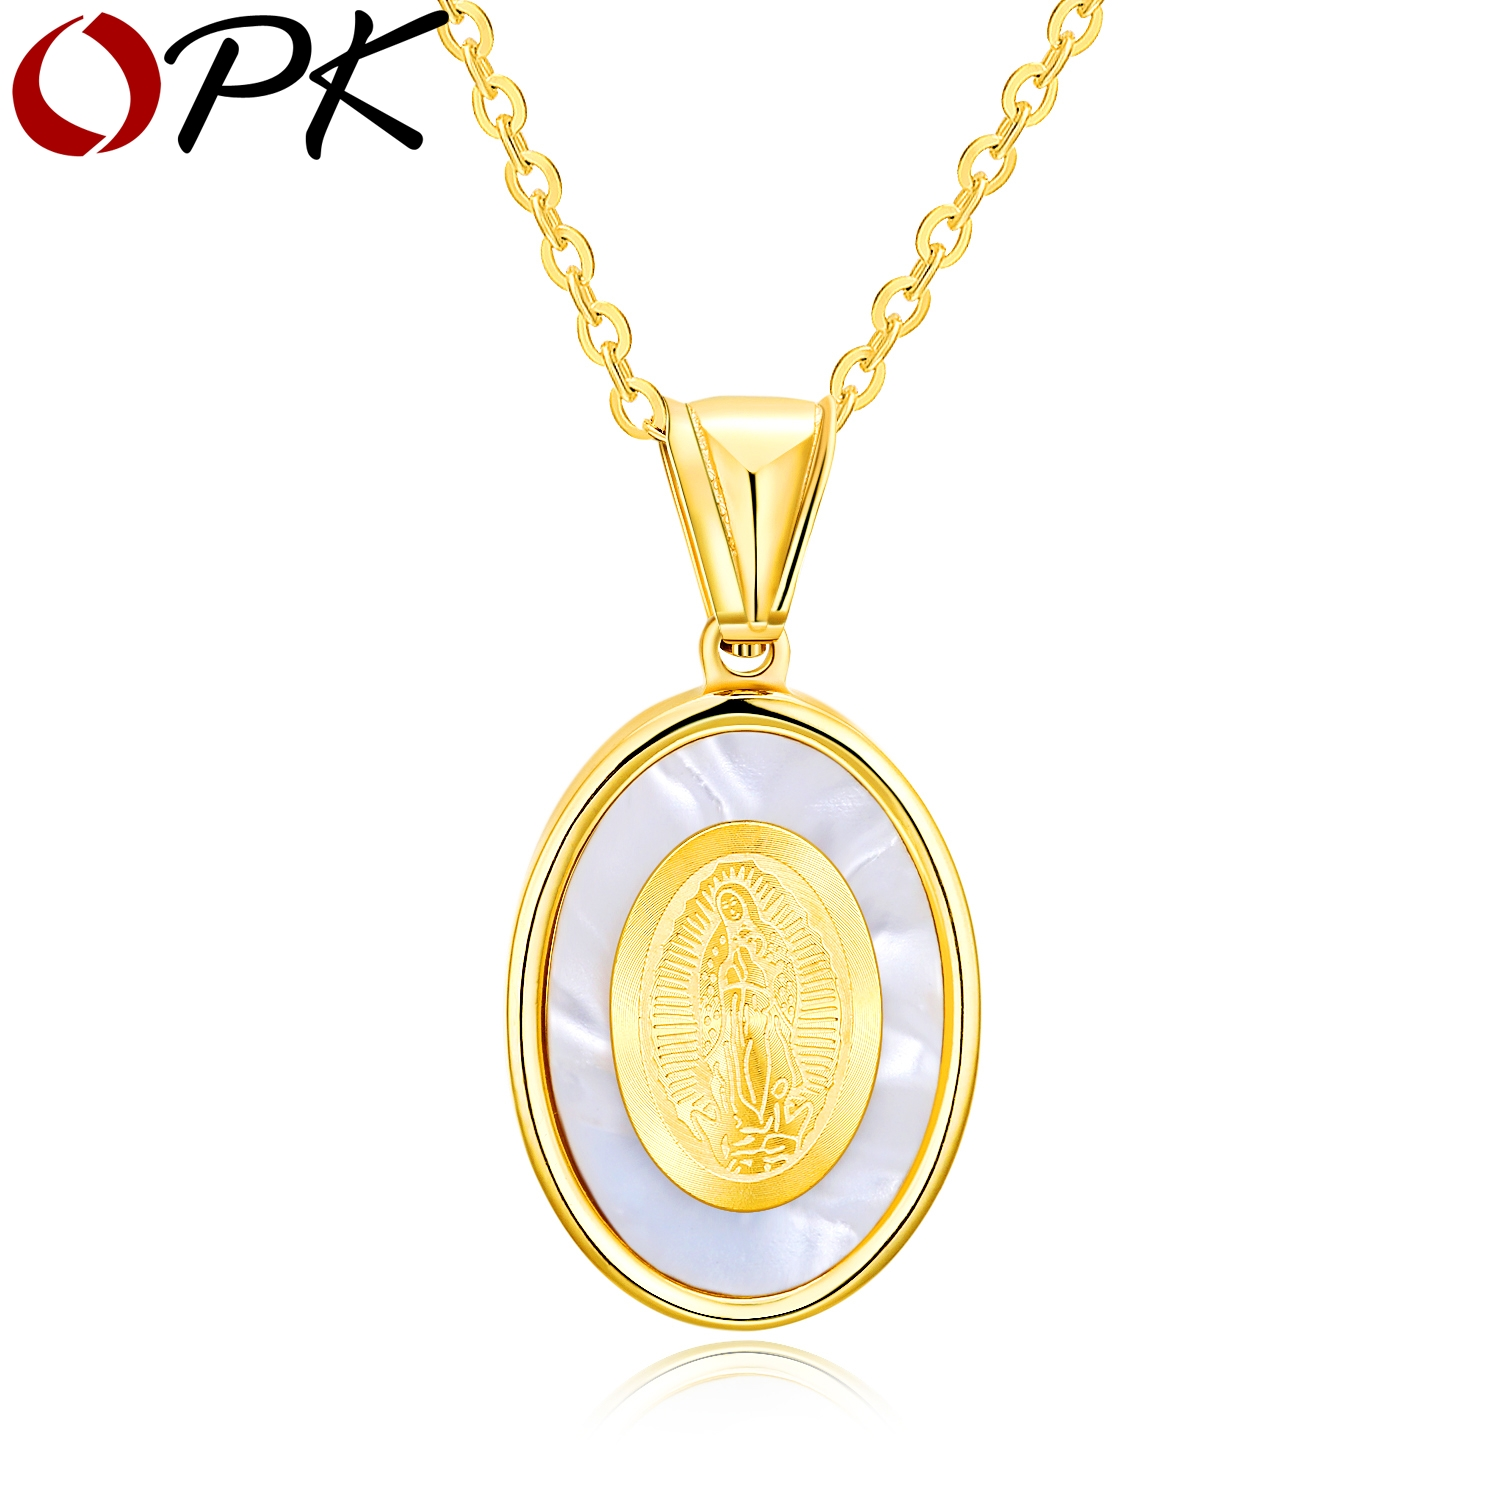 Necklace for Men Mens Golden Virgin Mary Medallion Pendant Necklace in Stainless Steel Religious Male Jewelry for Men Gift for Him